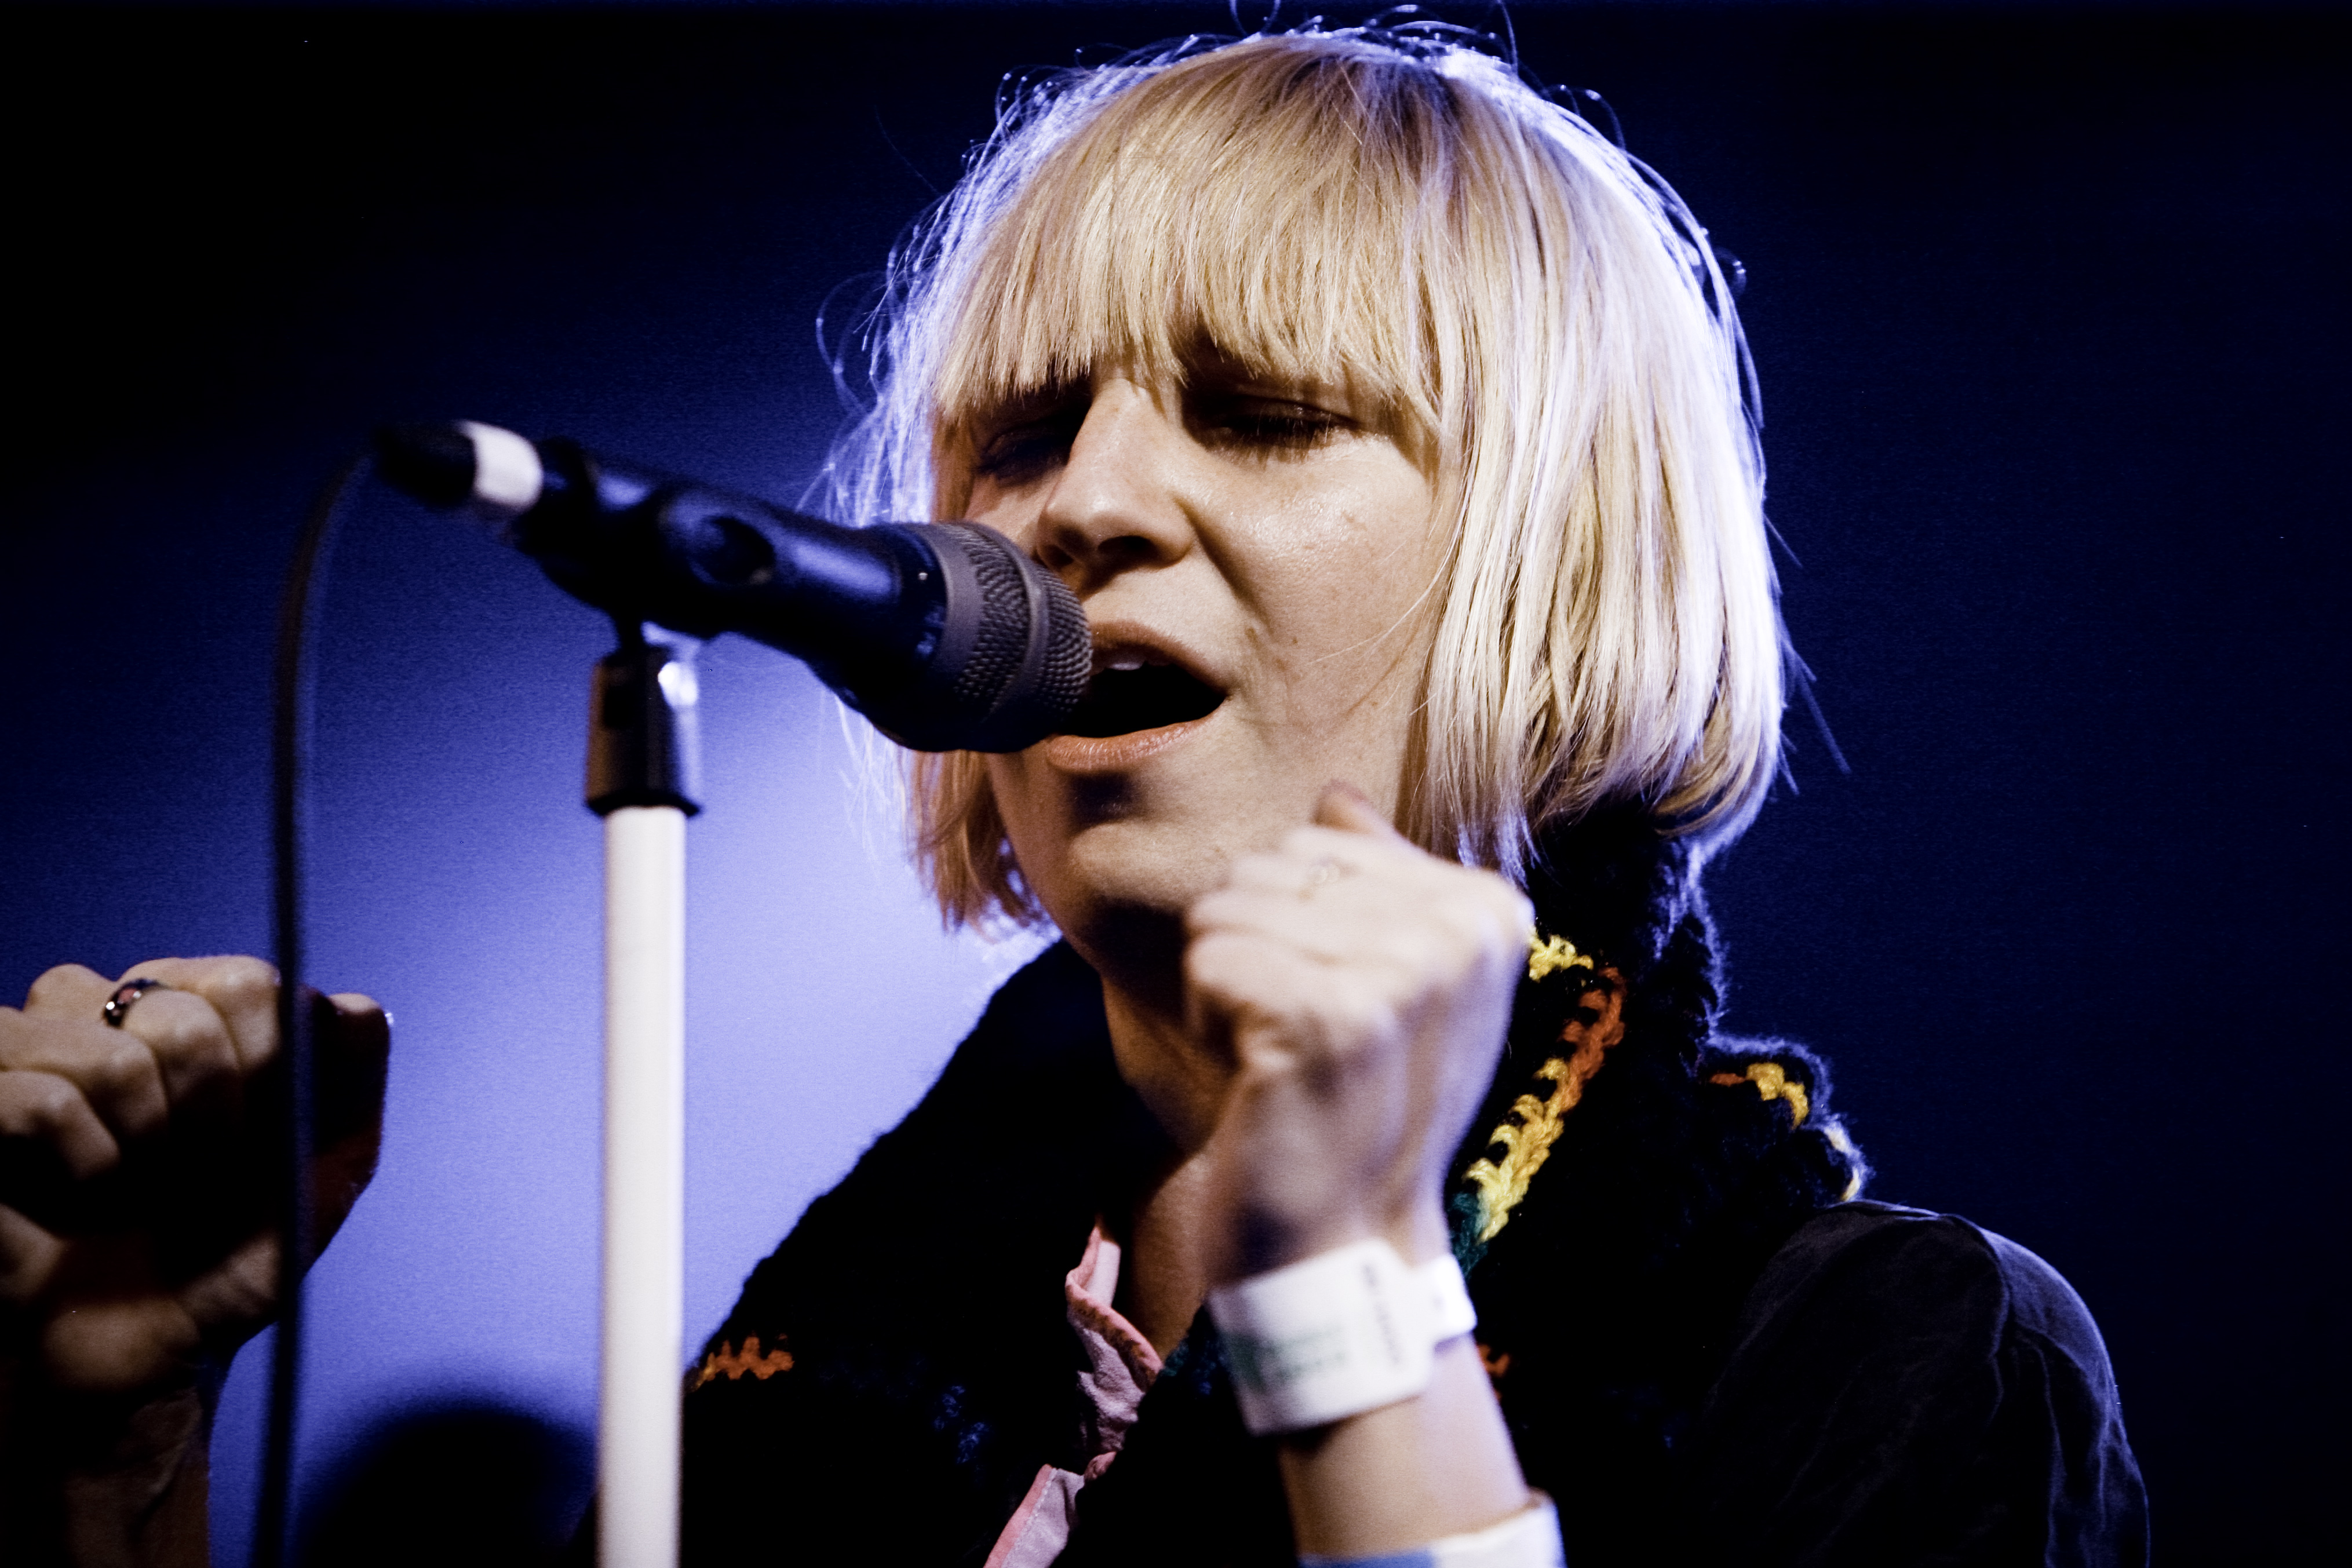 For 1000 Forms Of Fear, Sia Writes Her Own Songs Like Pop Hits